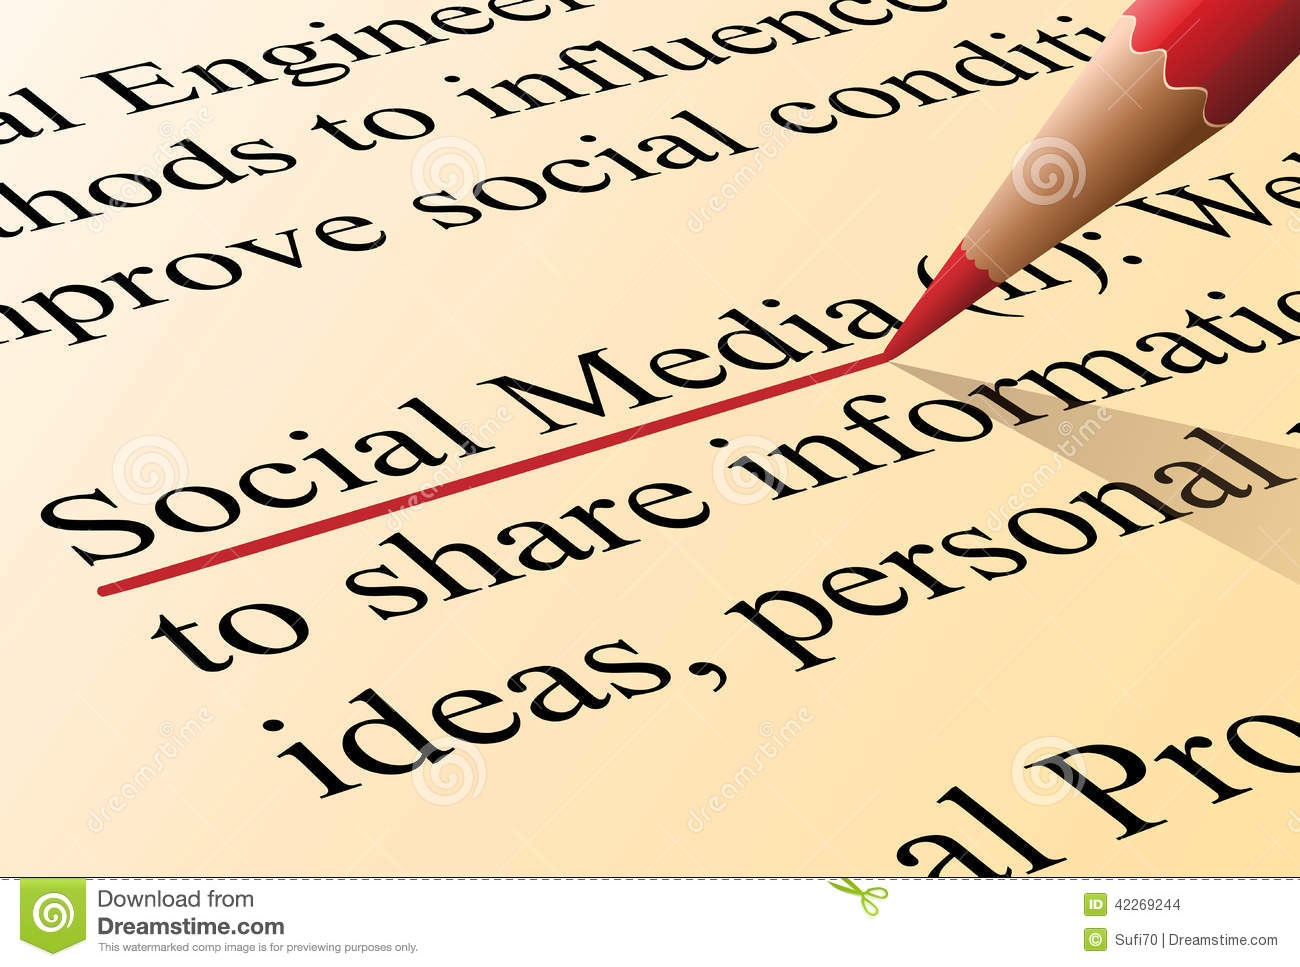 Social media definition stock vector image 42269244 for Soil media definition